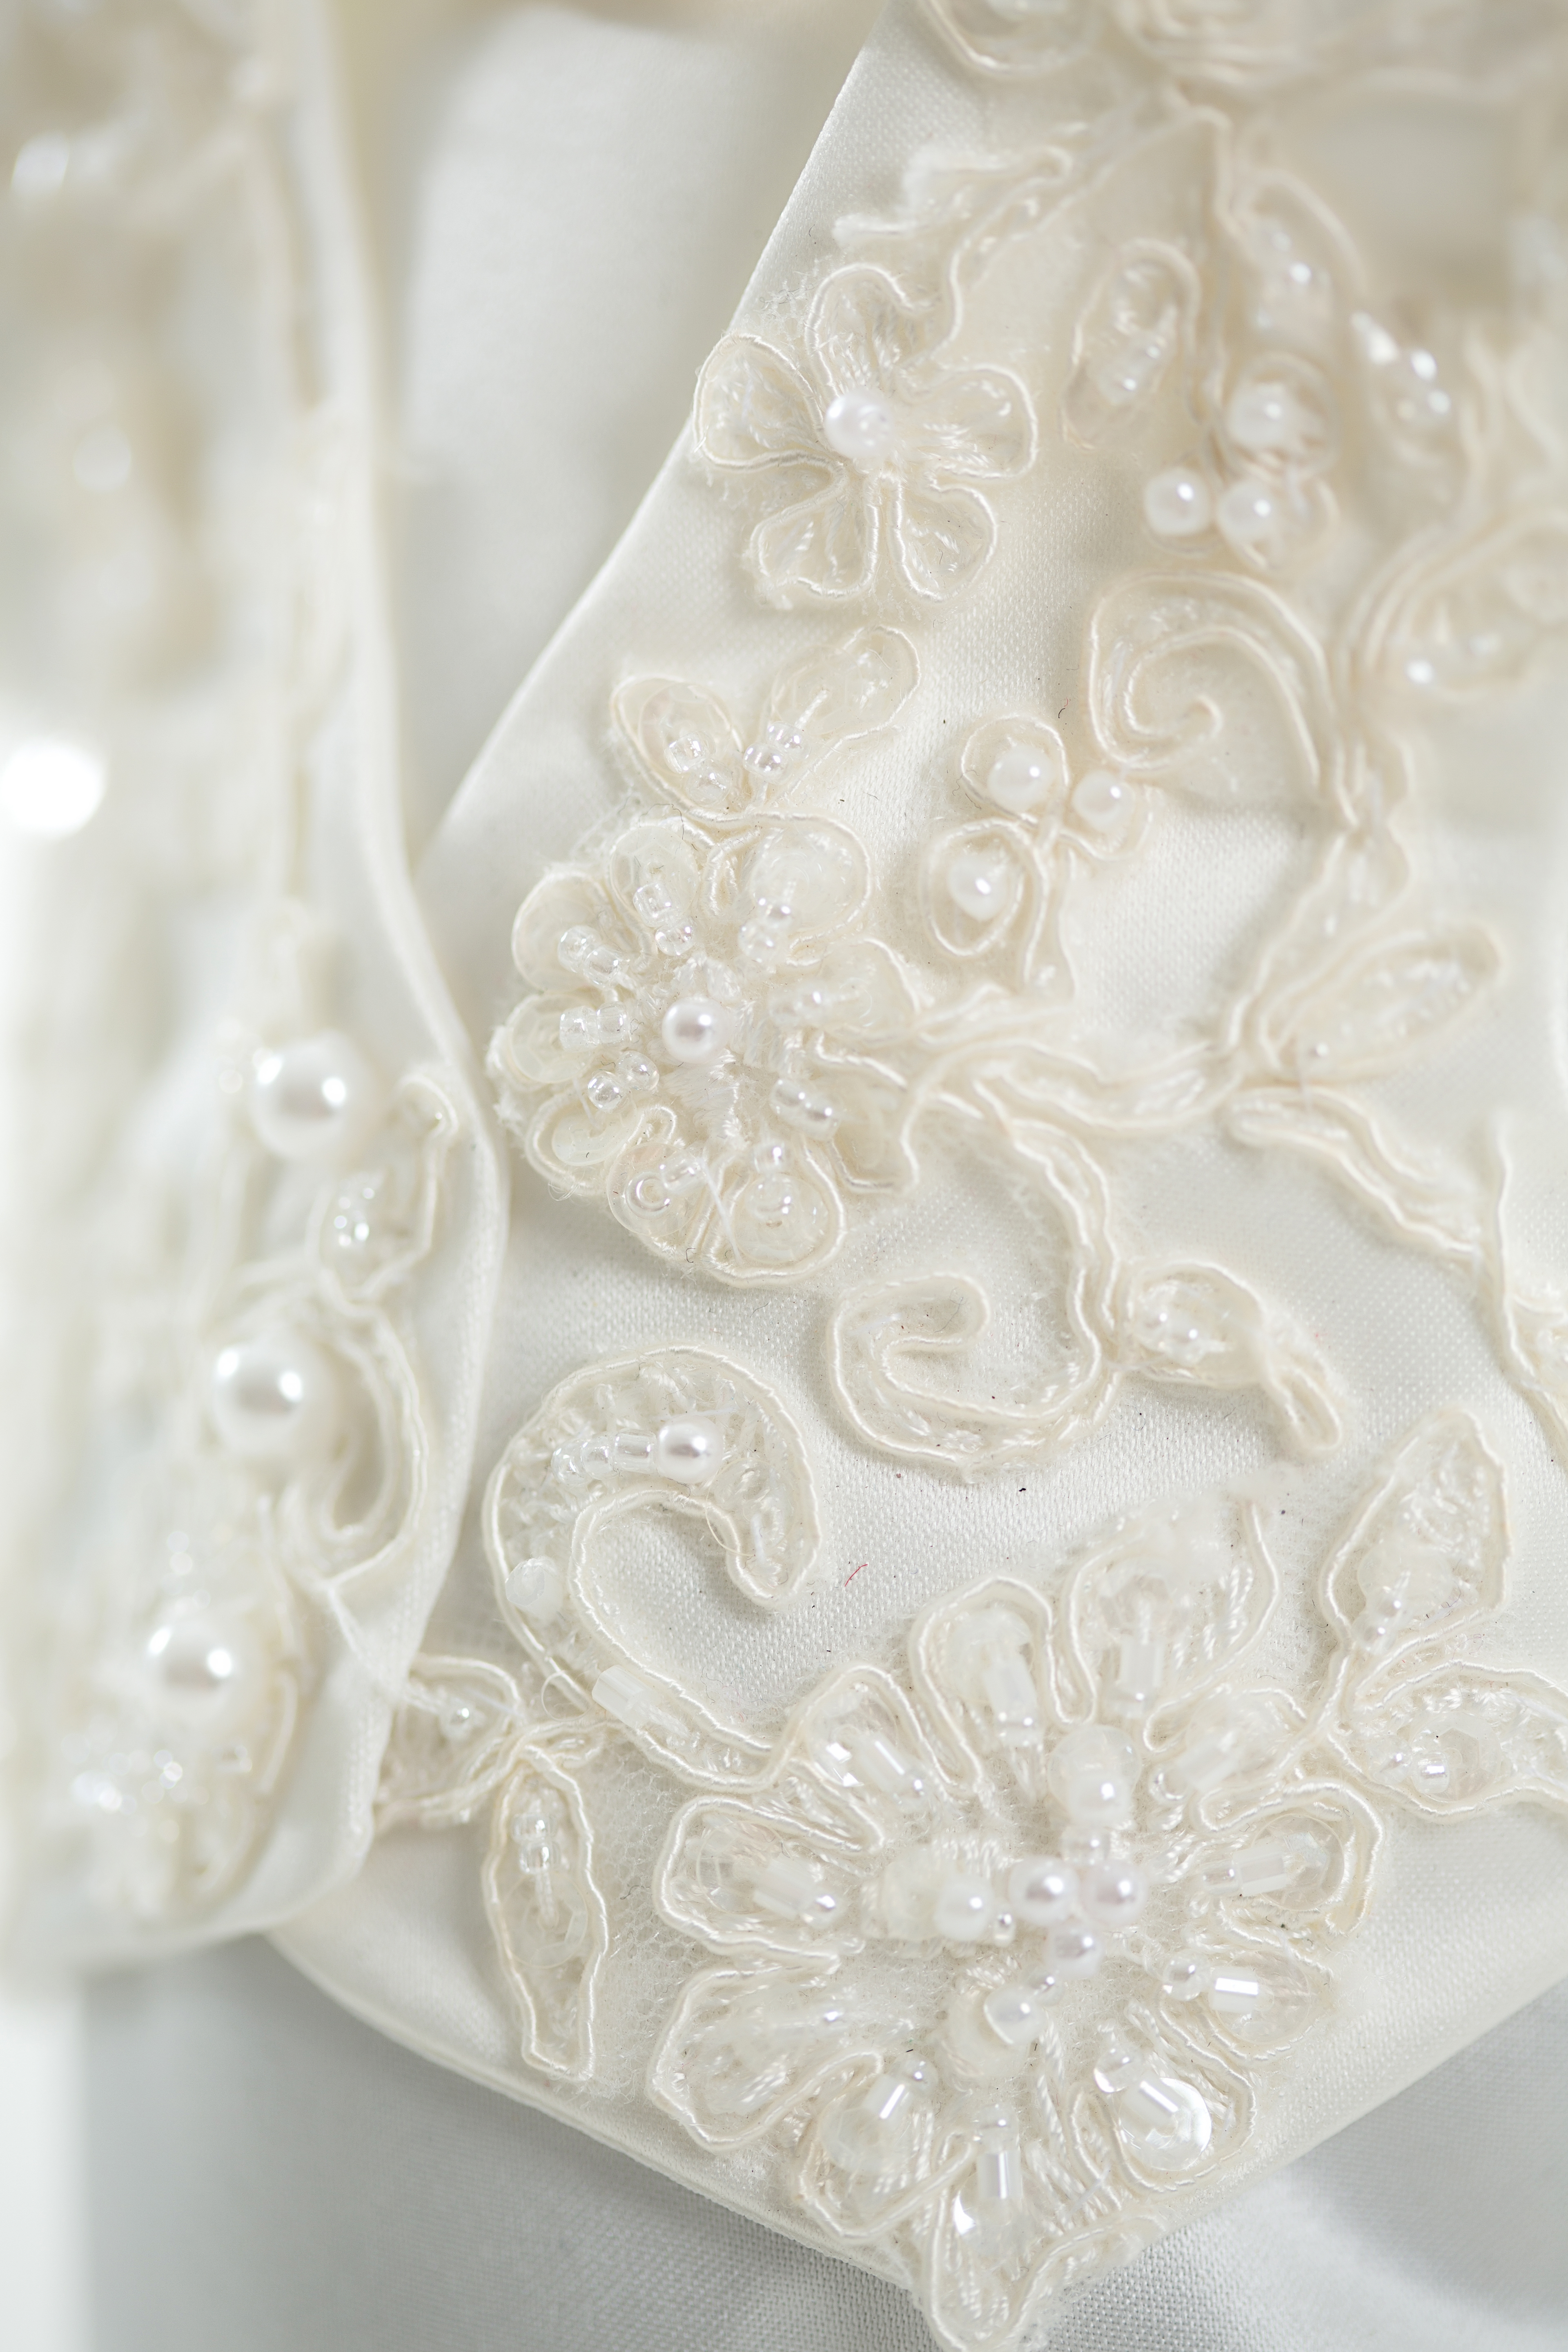 Magnificent Helping Hands Angel Gowns Component - Wedding and ...